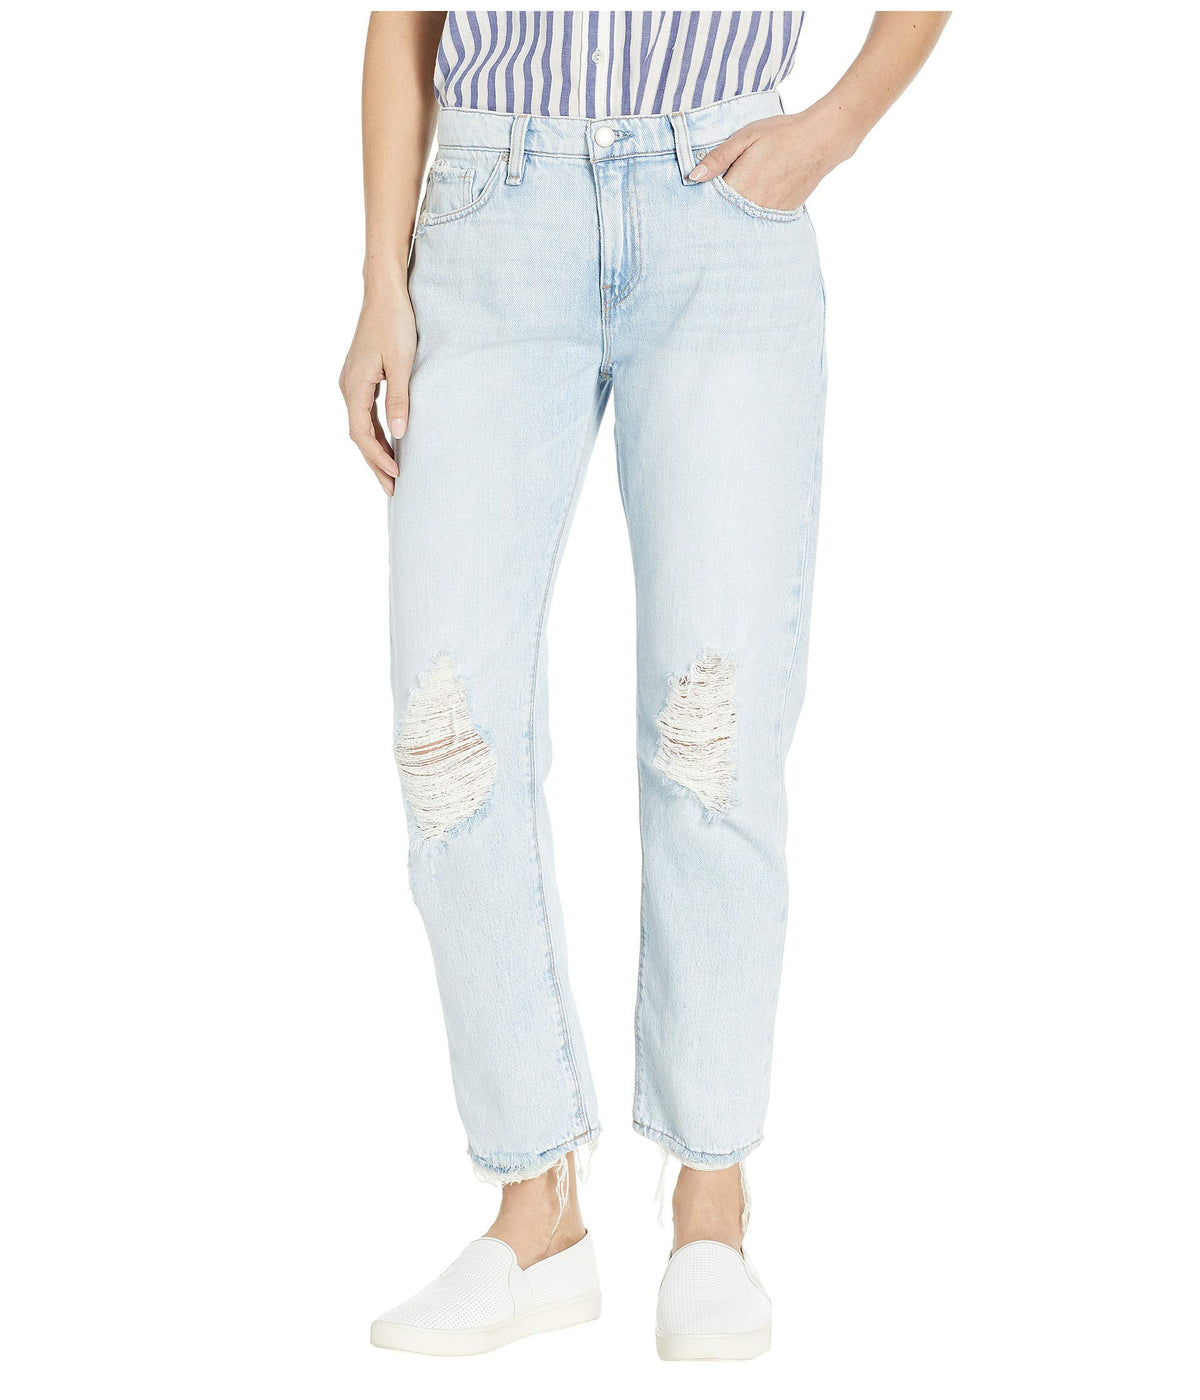 Jessi Relaxed Cropped Boyfriend Five-Pocket Jeans in Save Tonight